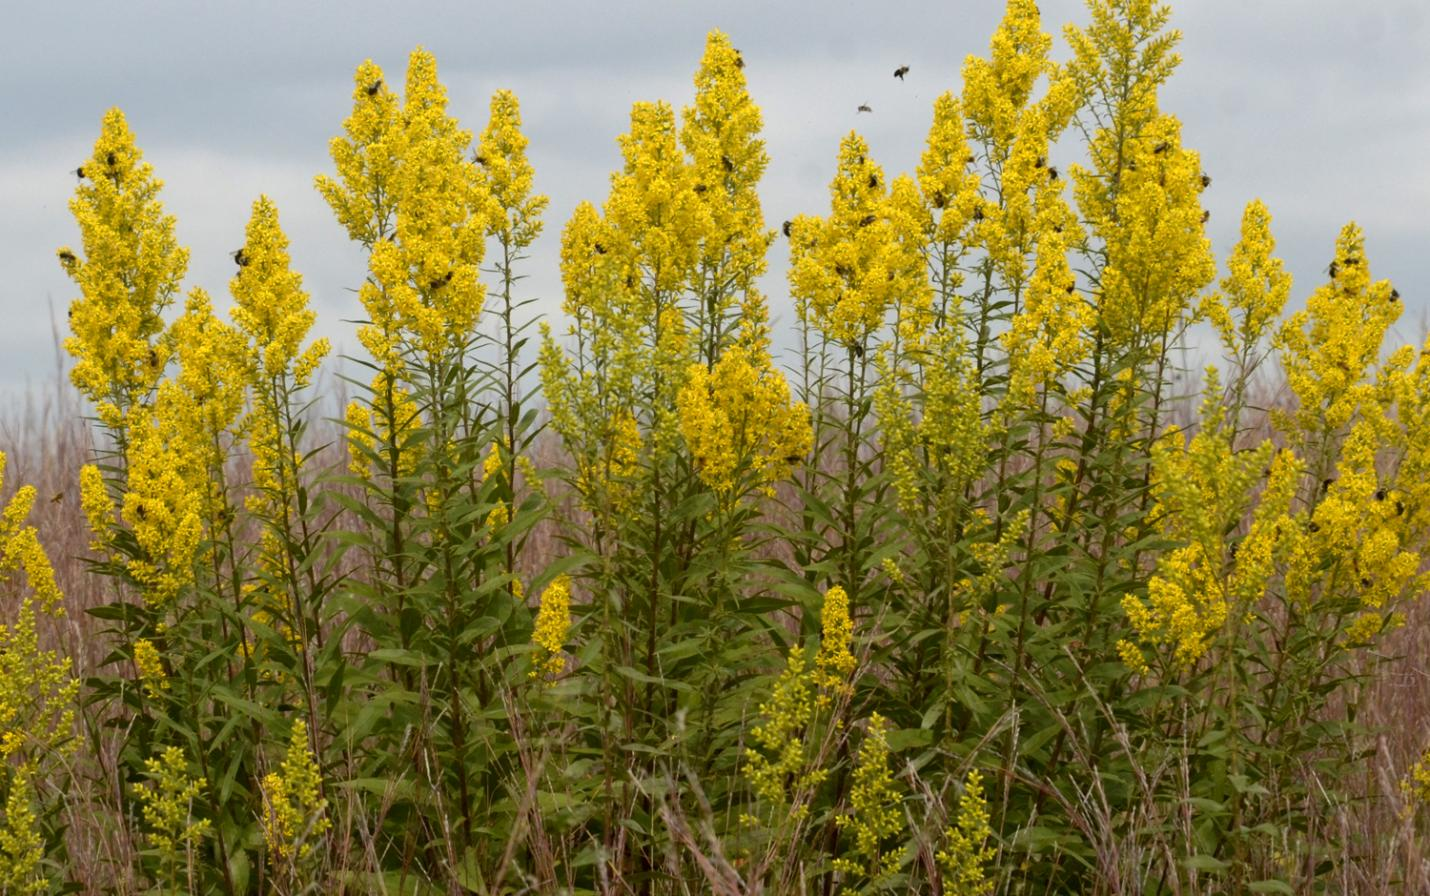 Showy goldenrod with bees. Photo by Tom Rhorer.